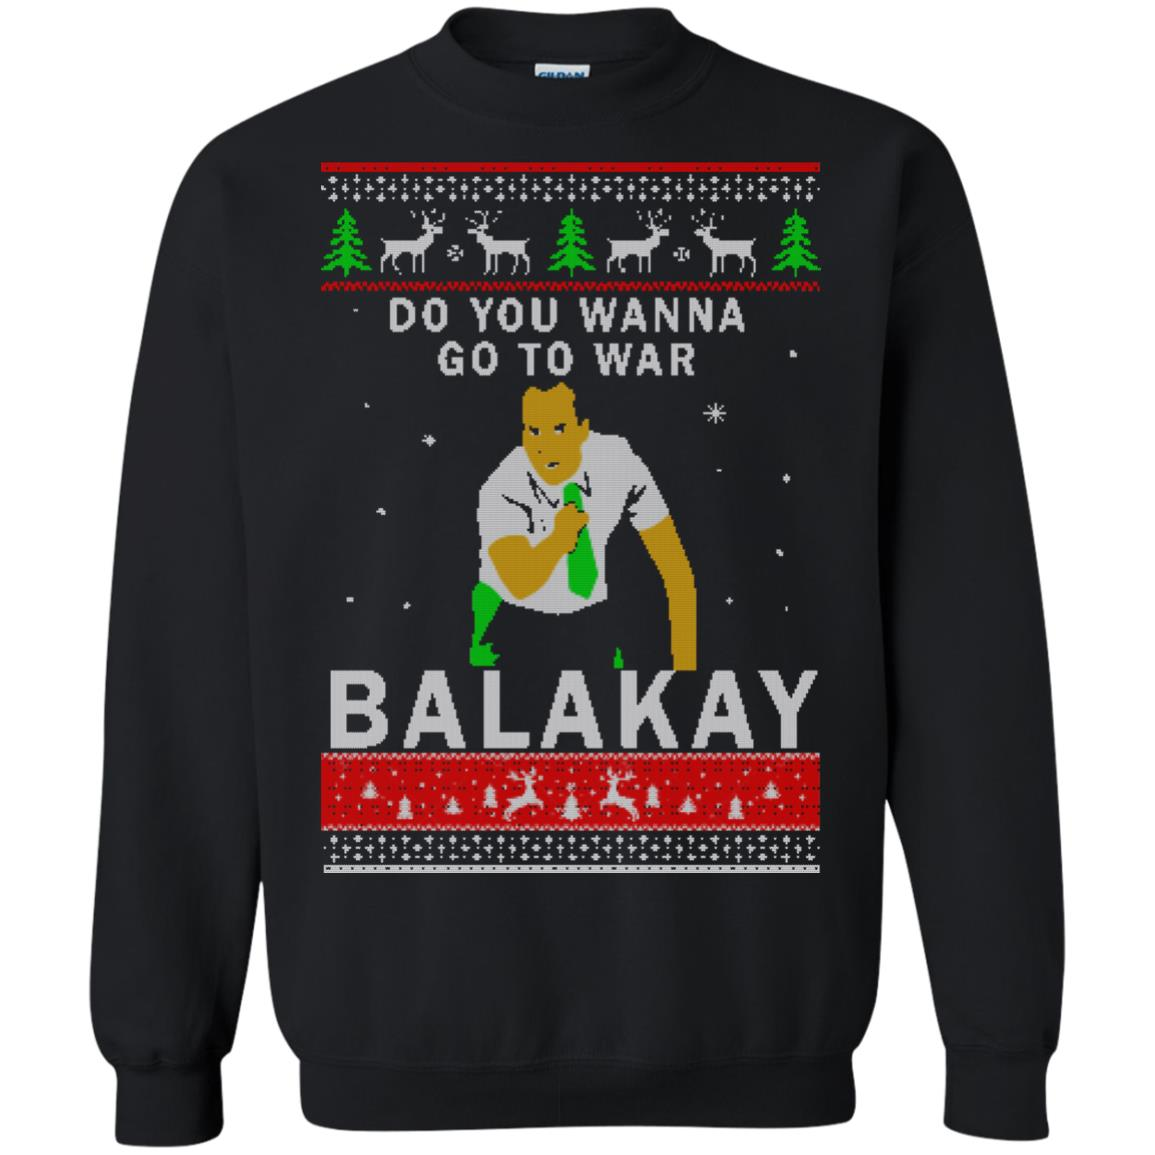 image 1065 - Key & Peele: Do You Wanna Go To War Balakay Christmas Sweater, Shirt